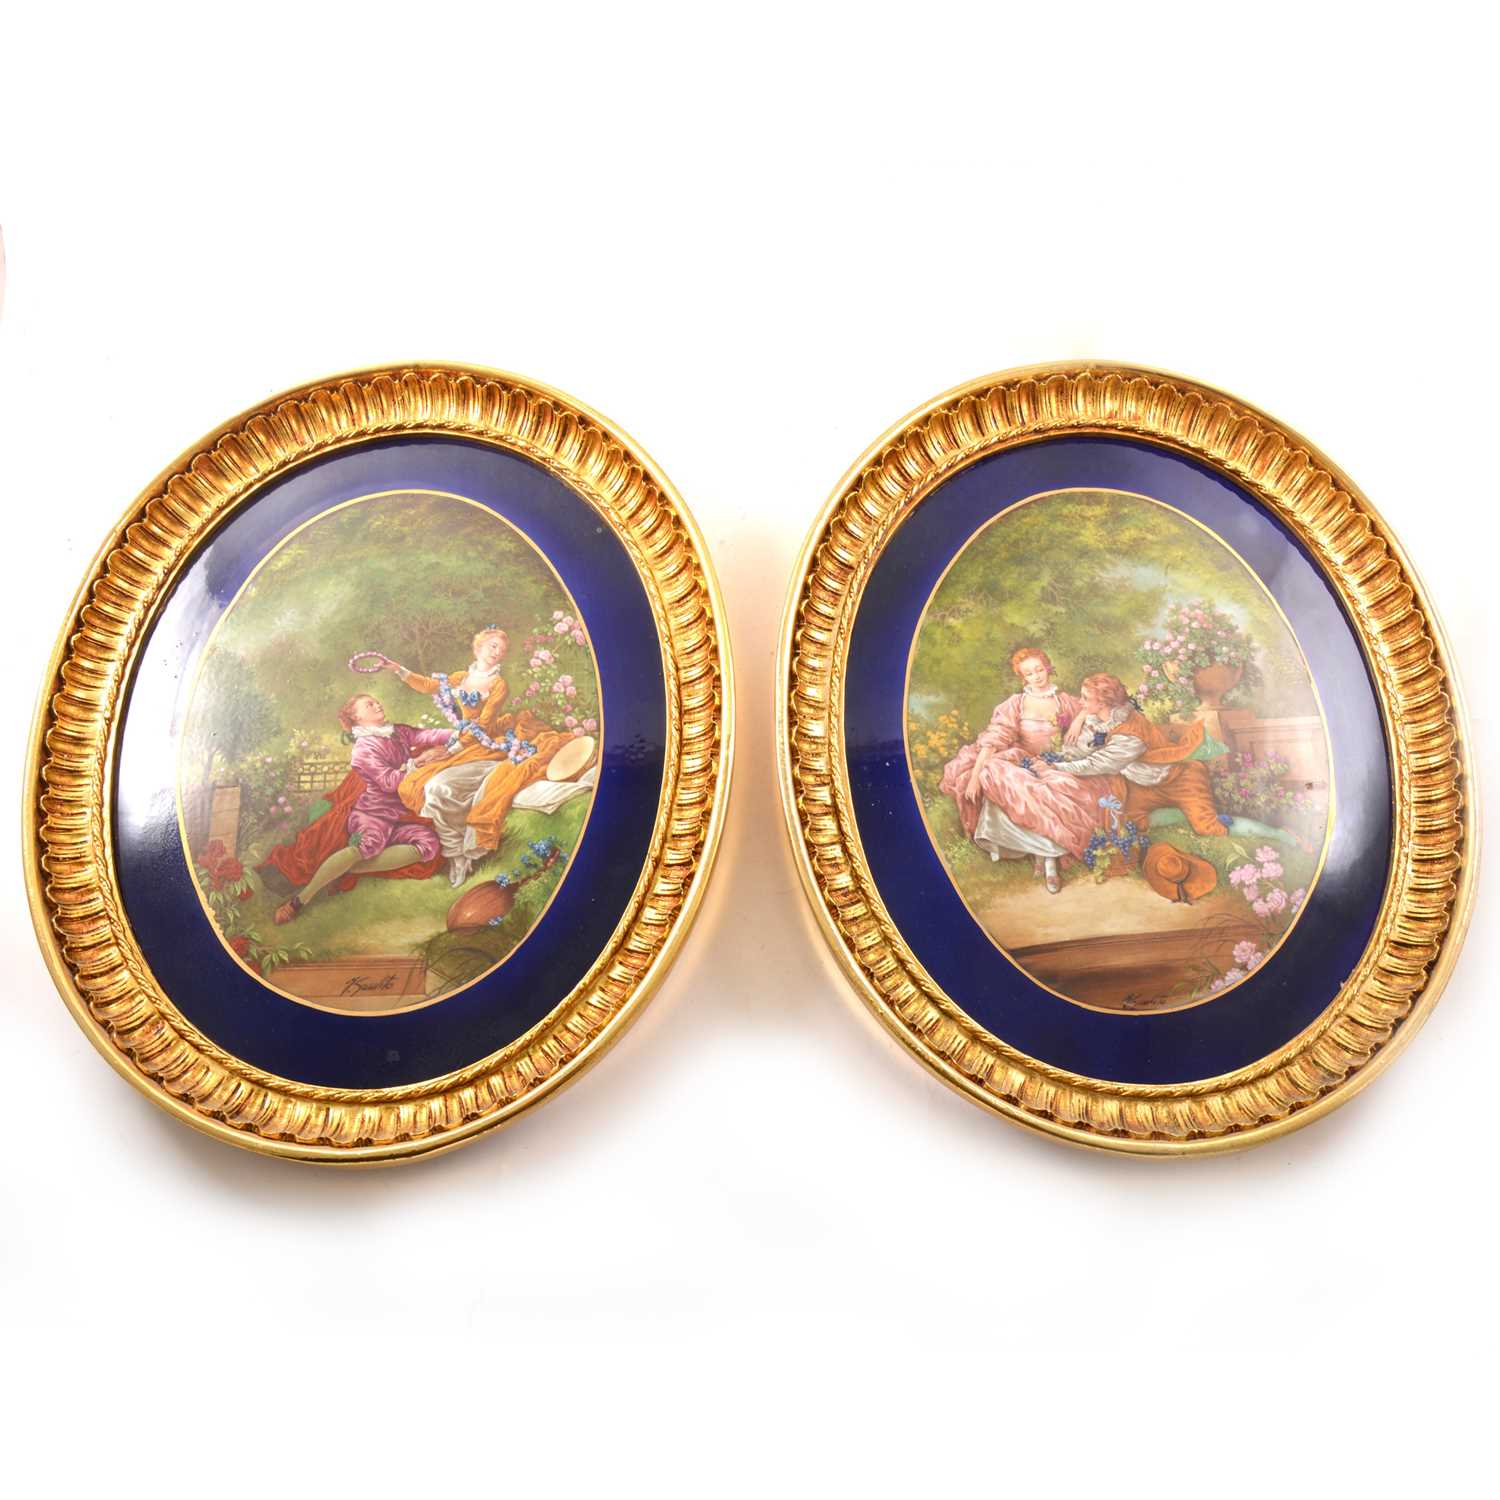 Lot 17-A pair of Sevres inspired oval porcelain plaques